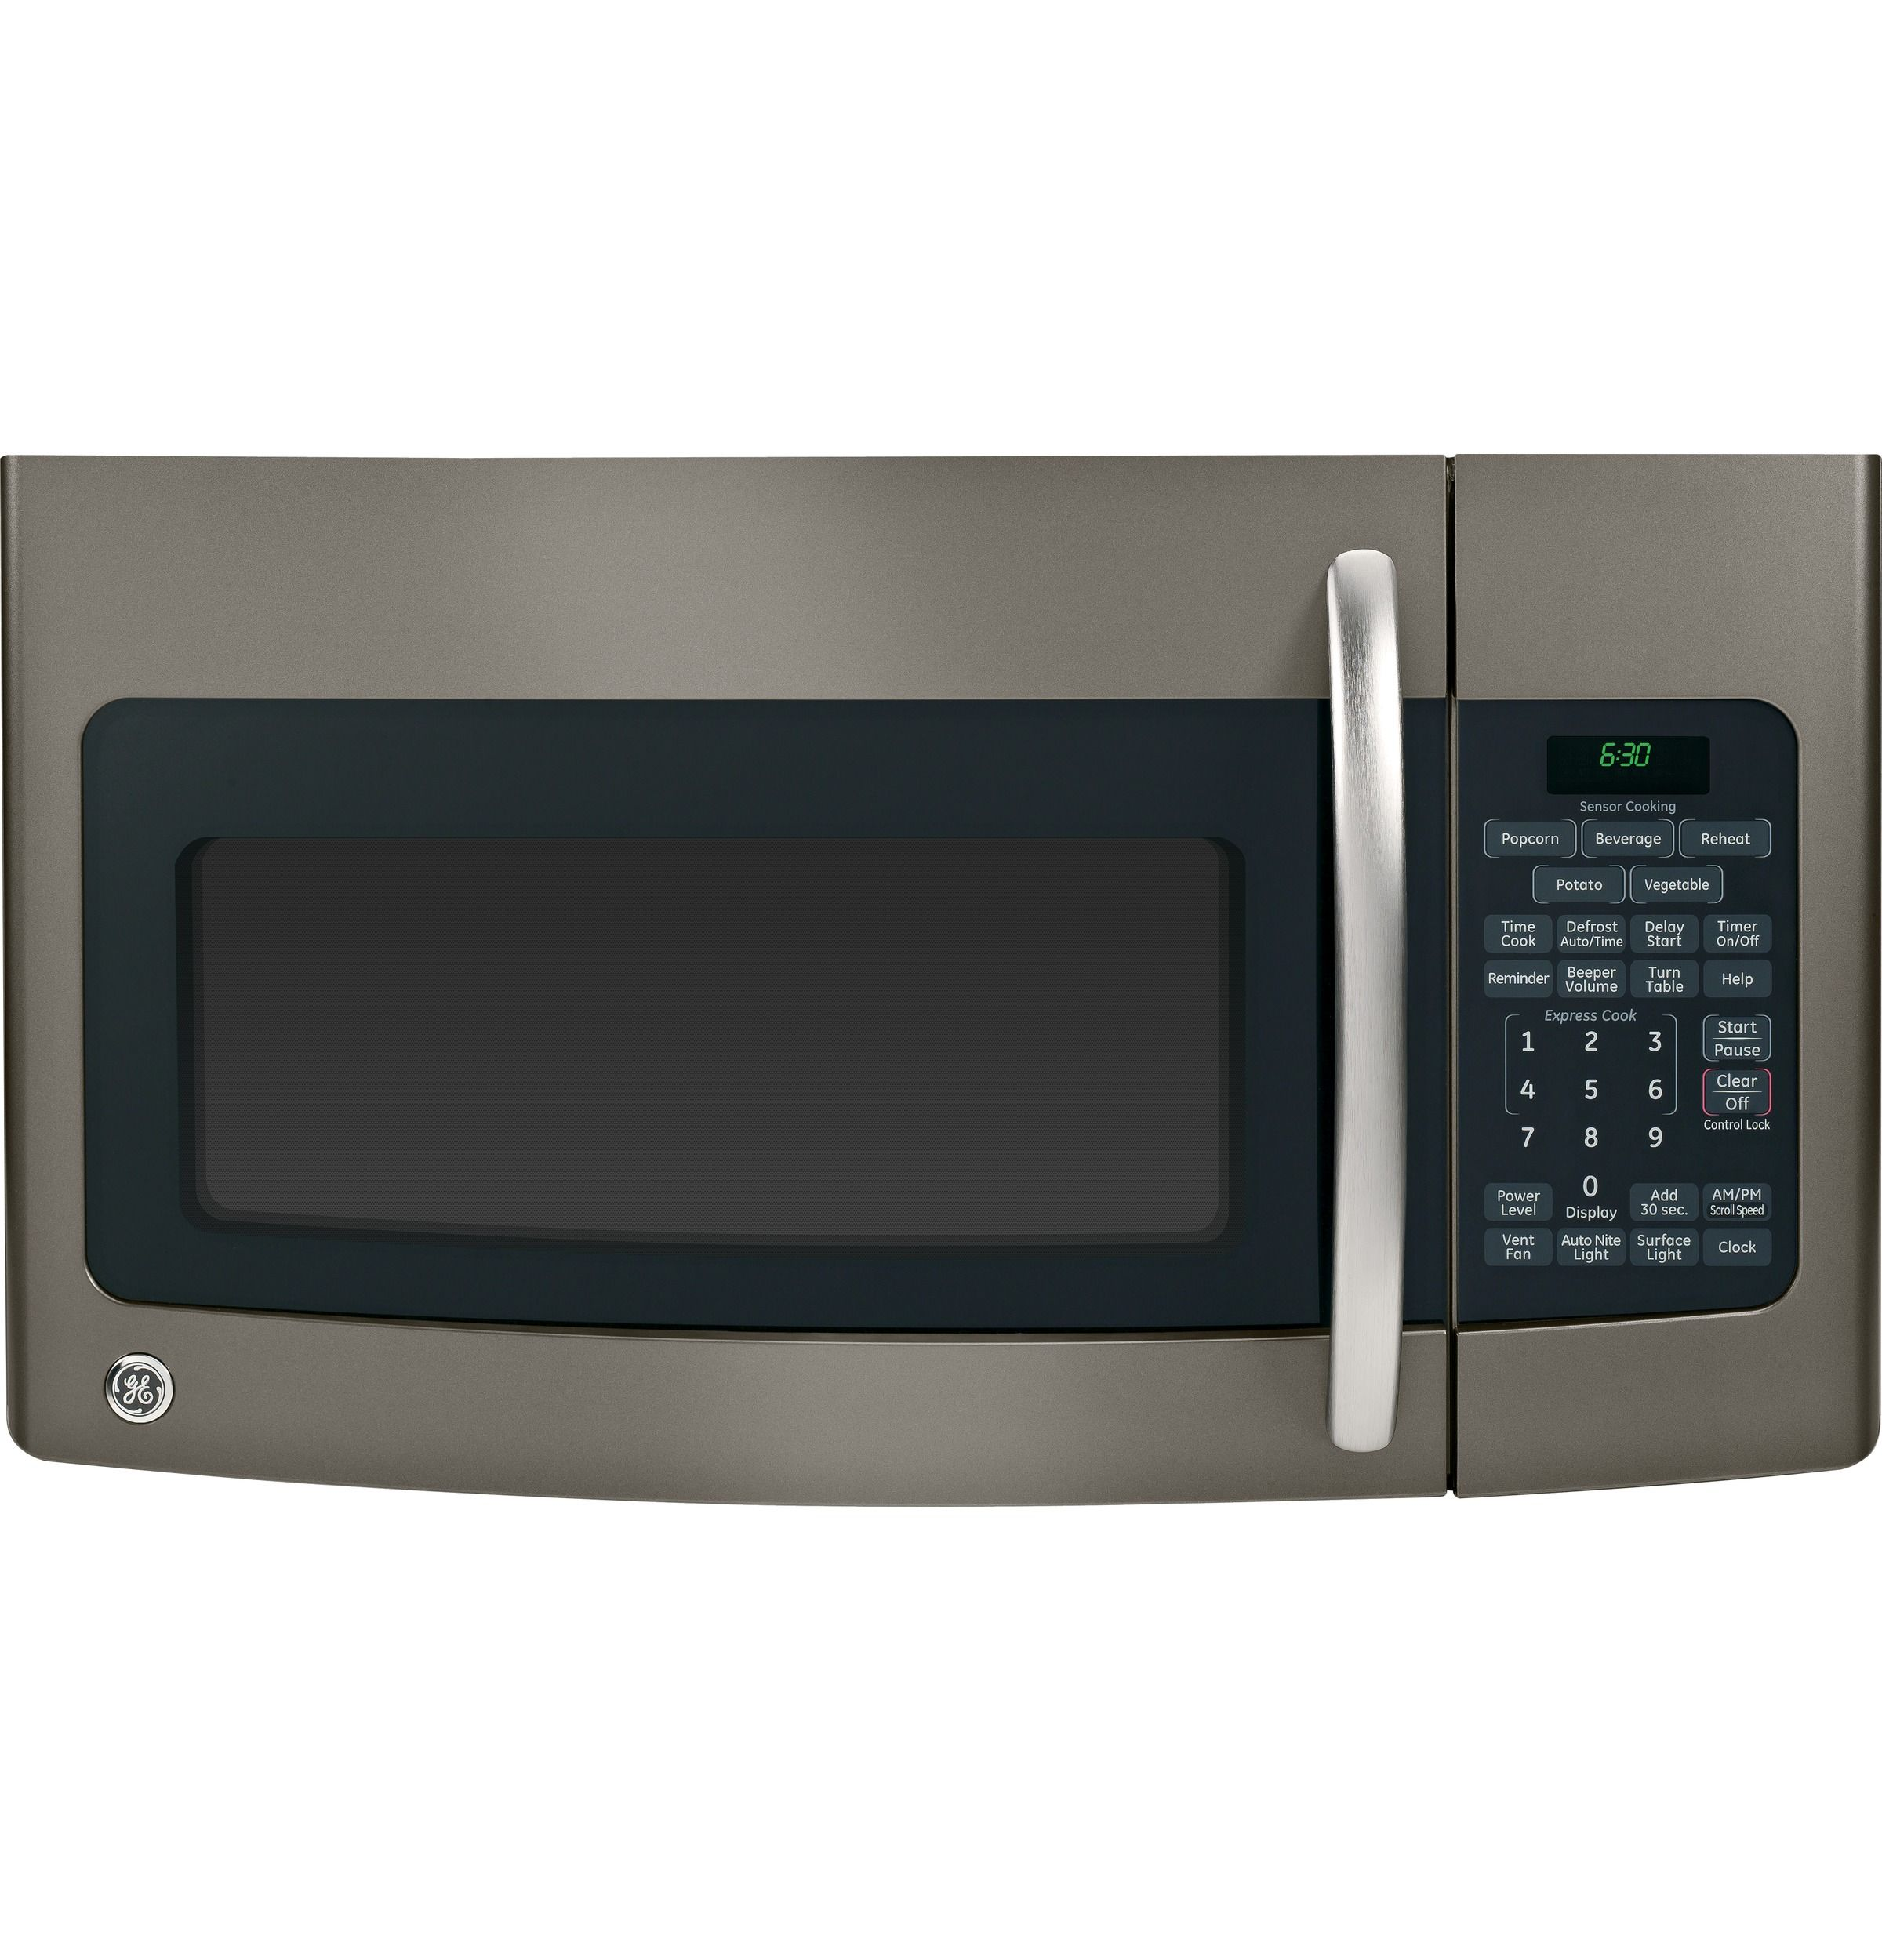 Jvm1750epes Ge Spacemaker 1 7 Cu Ft Over The Range Sensor Microwave Oven Ge Appliances Microwave Oven Slate Appliances Kitchen Range Microwave